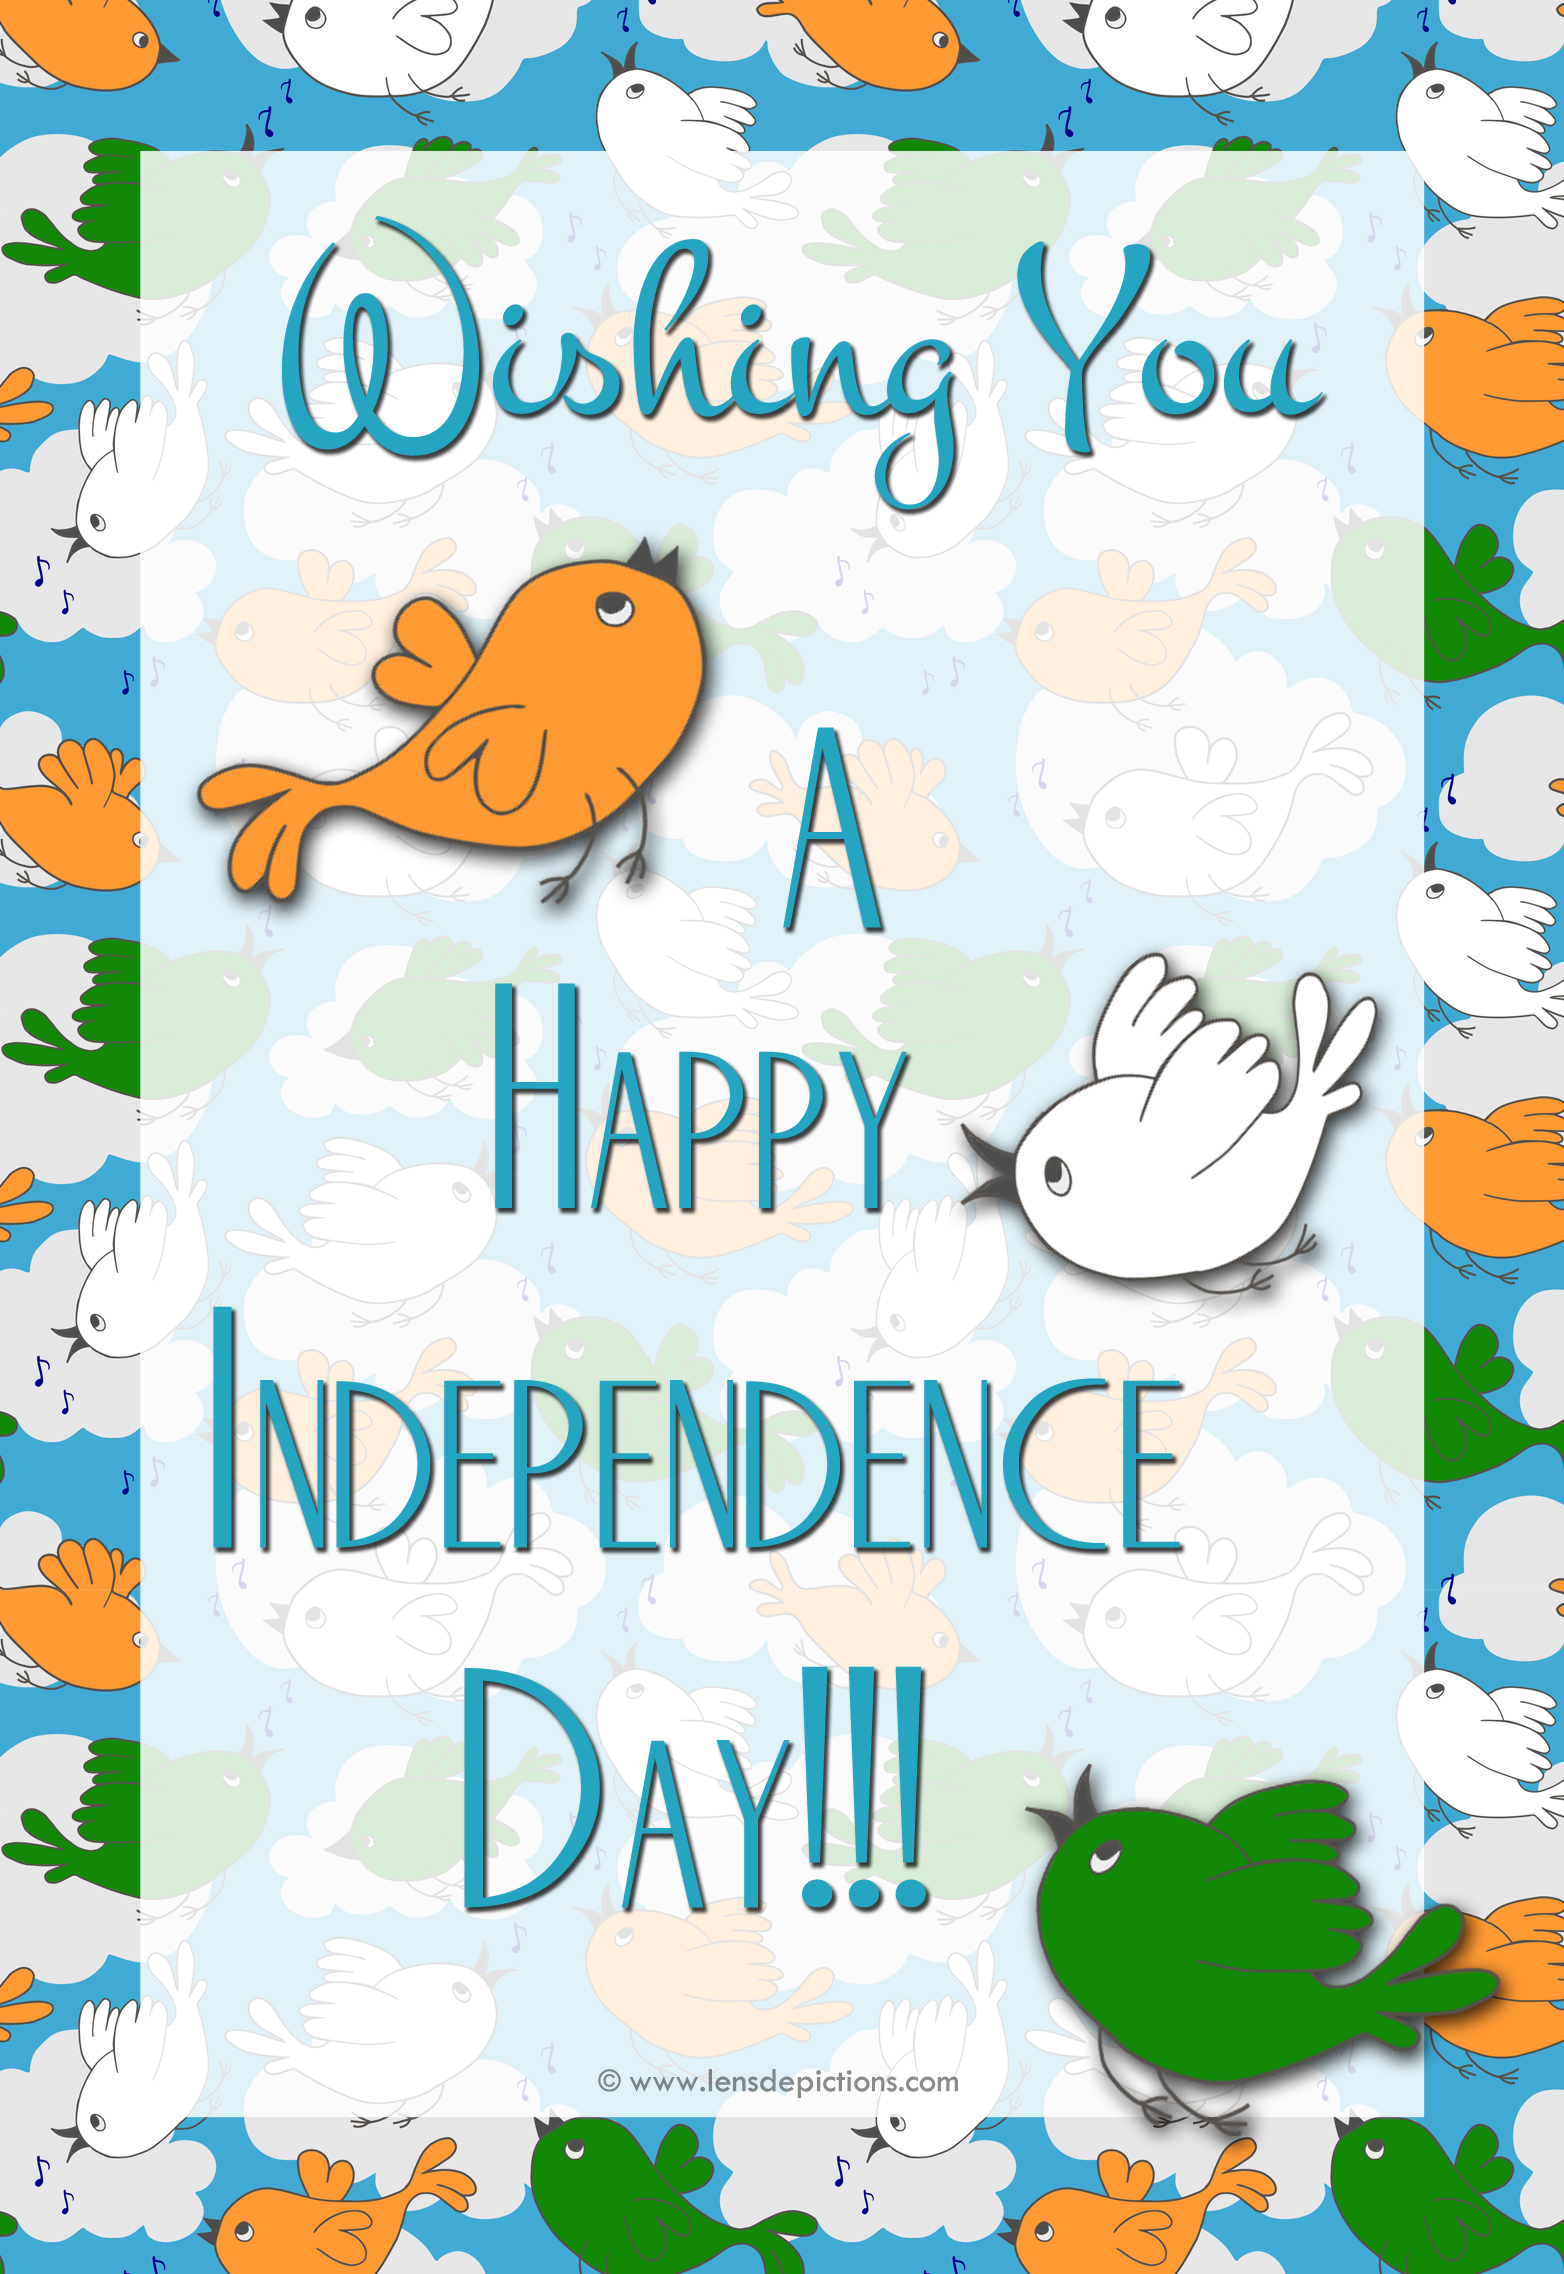 Independence Day India Wish